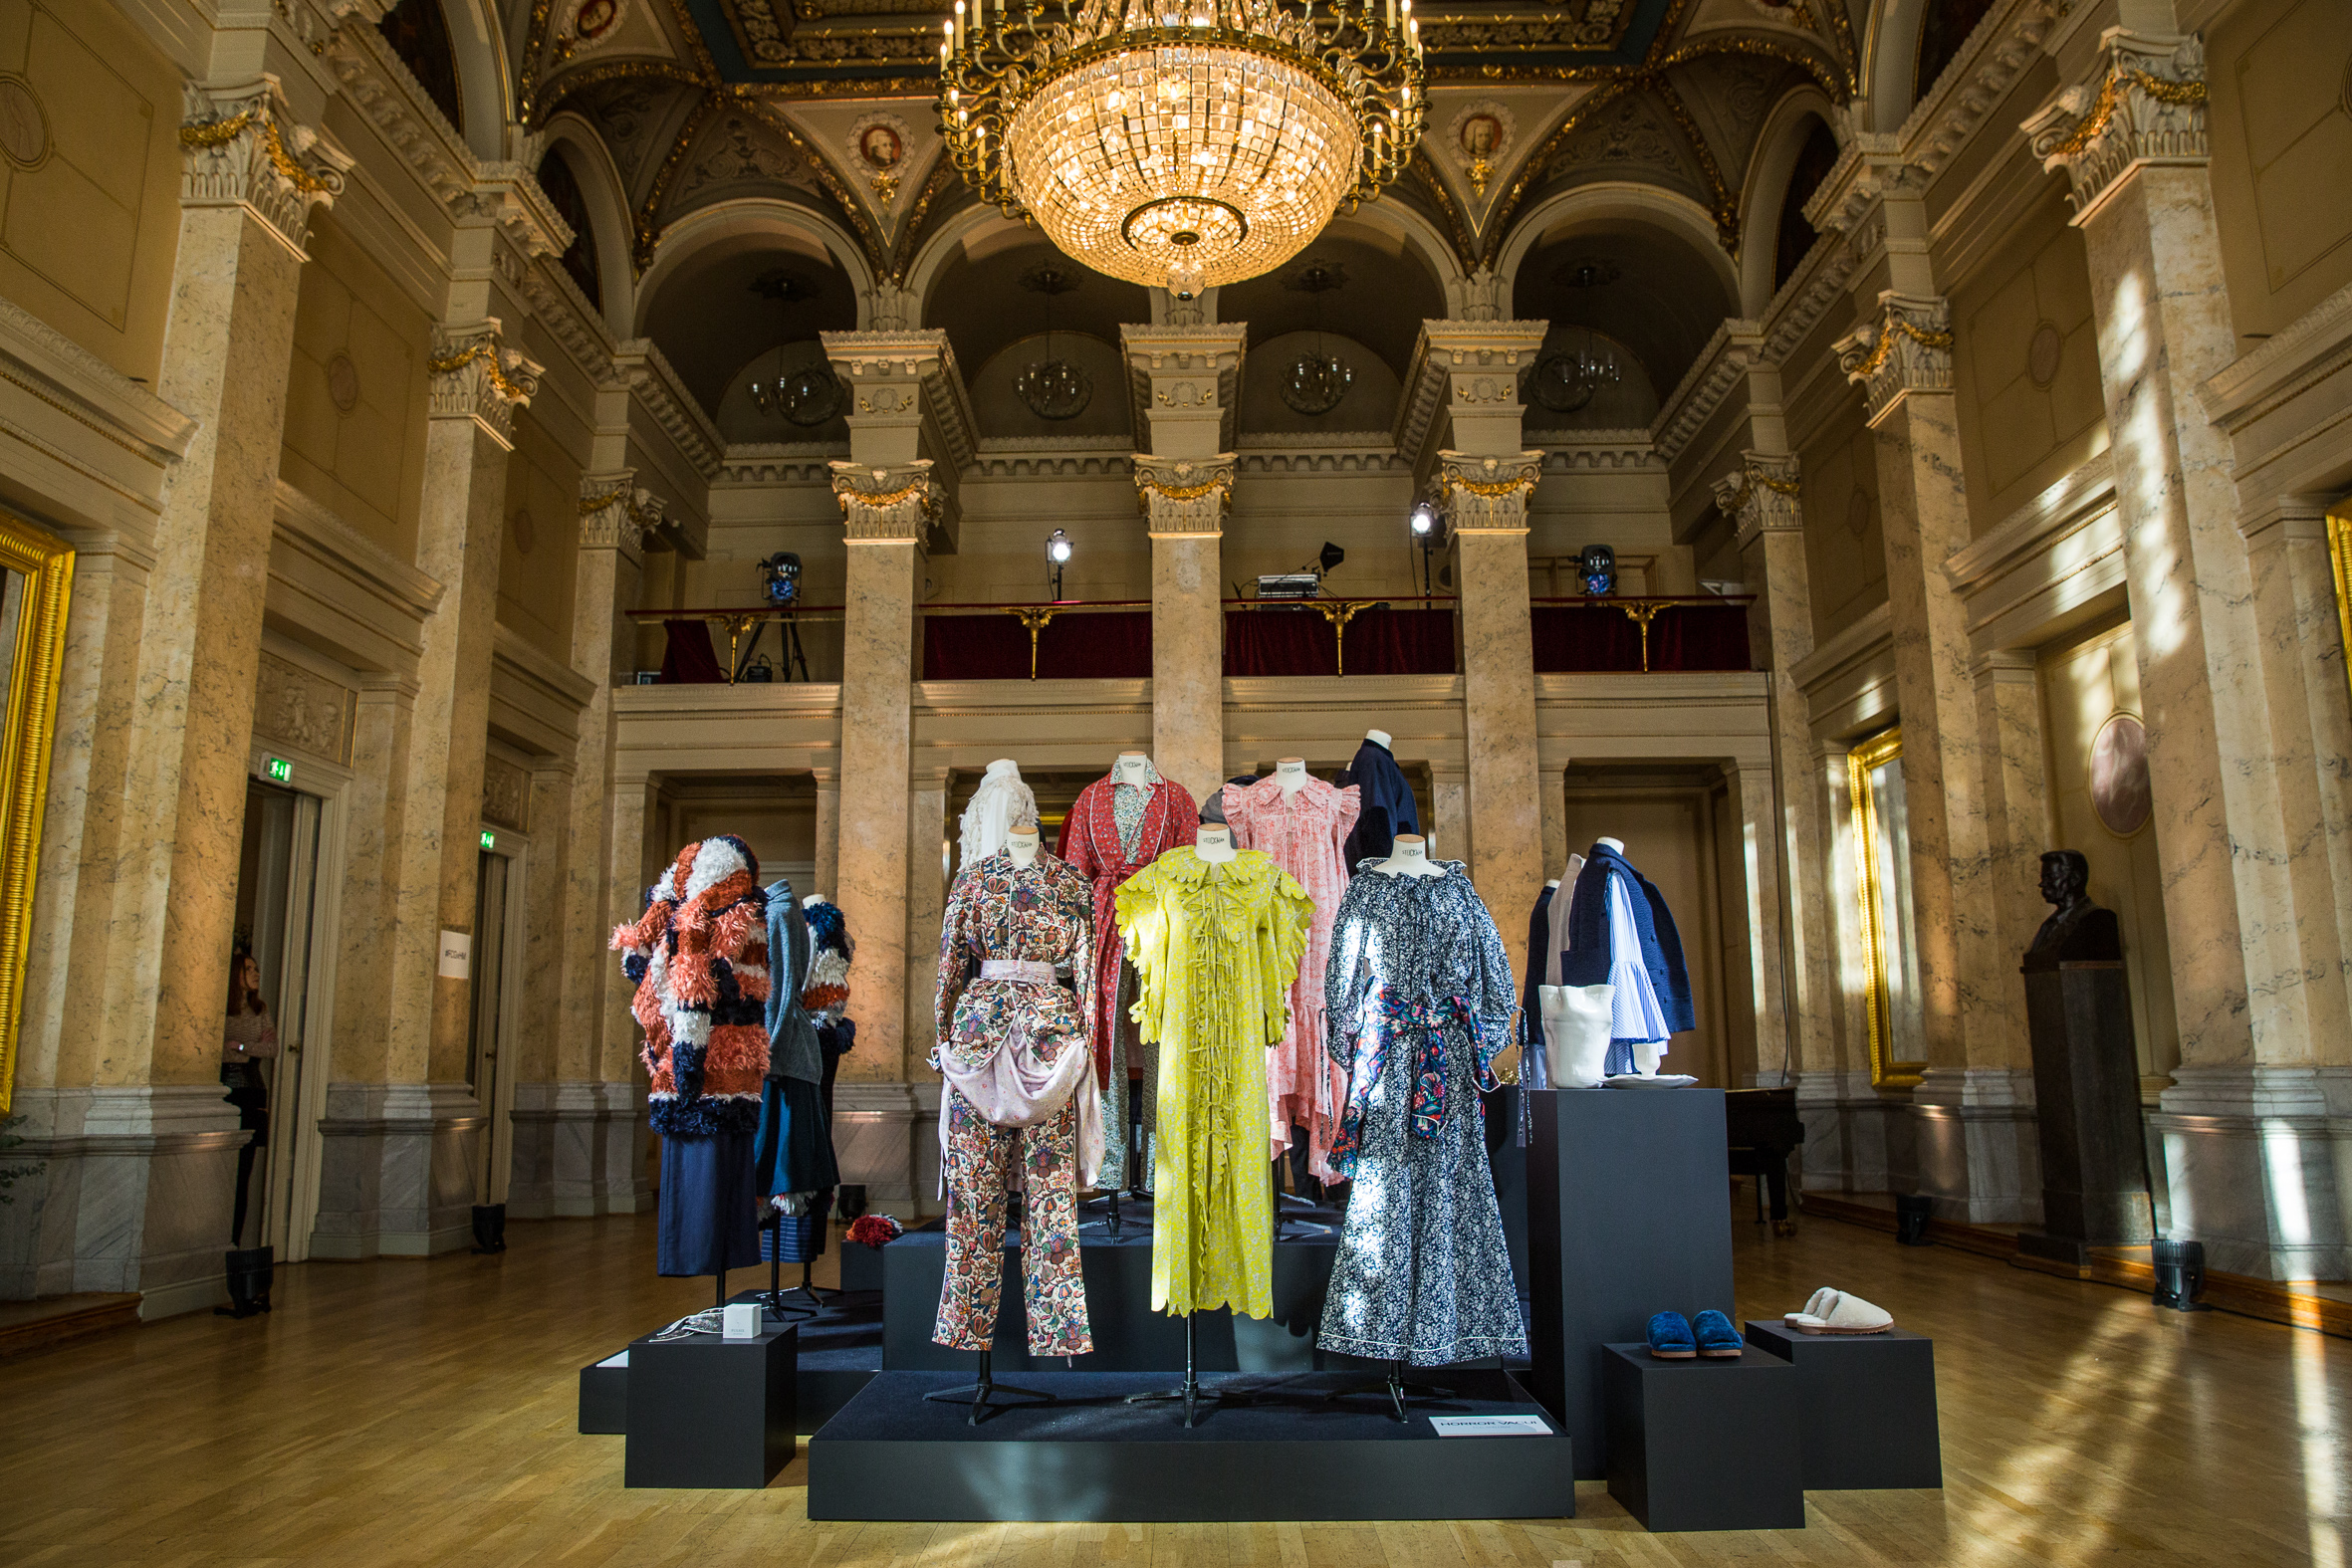 A coup d'oeuil of the winning designer's collections at Palais am Festungsgraben.